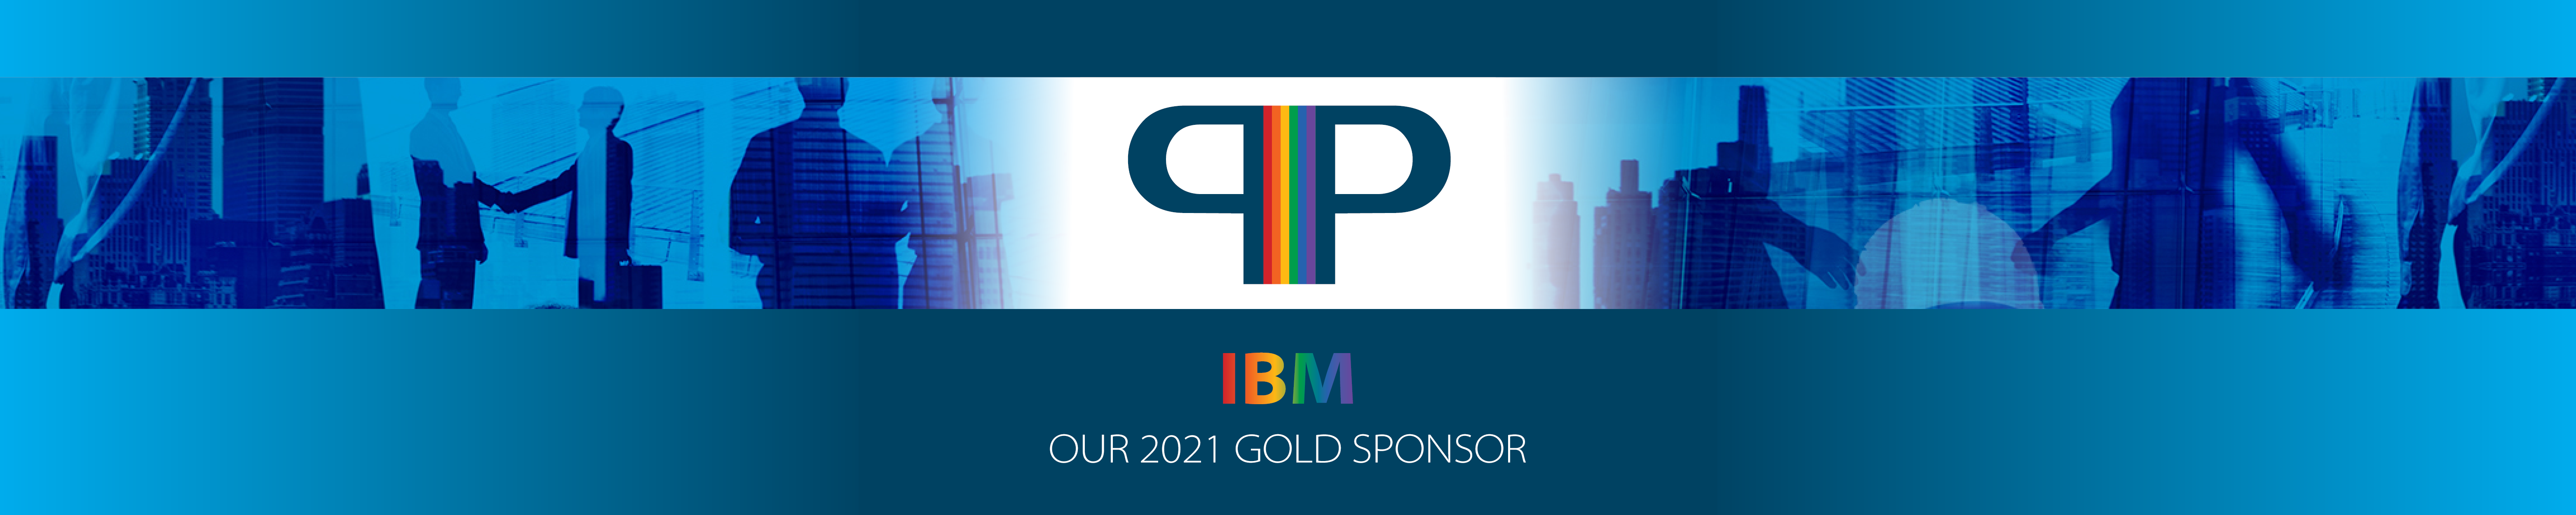 PIP_Conference_IBM_Gold_2021